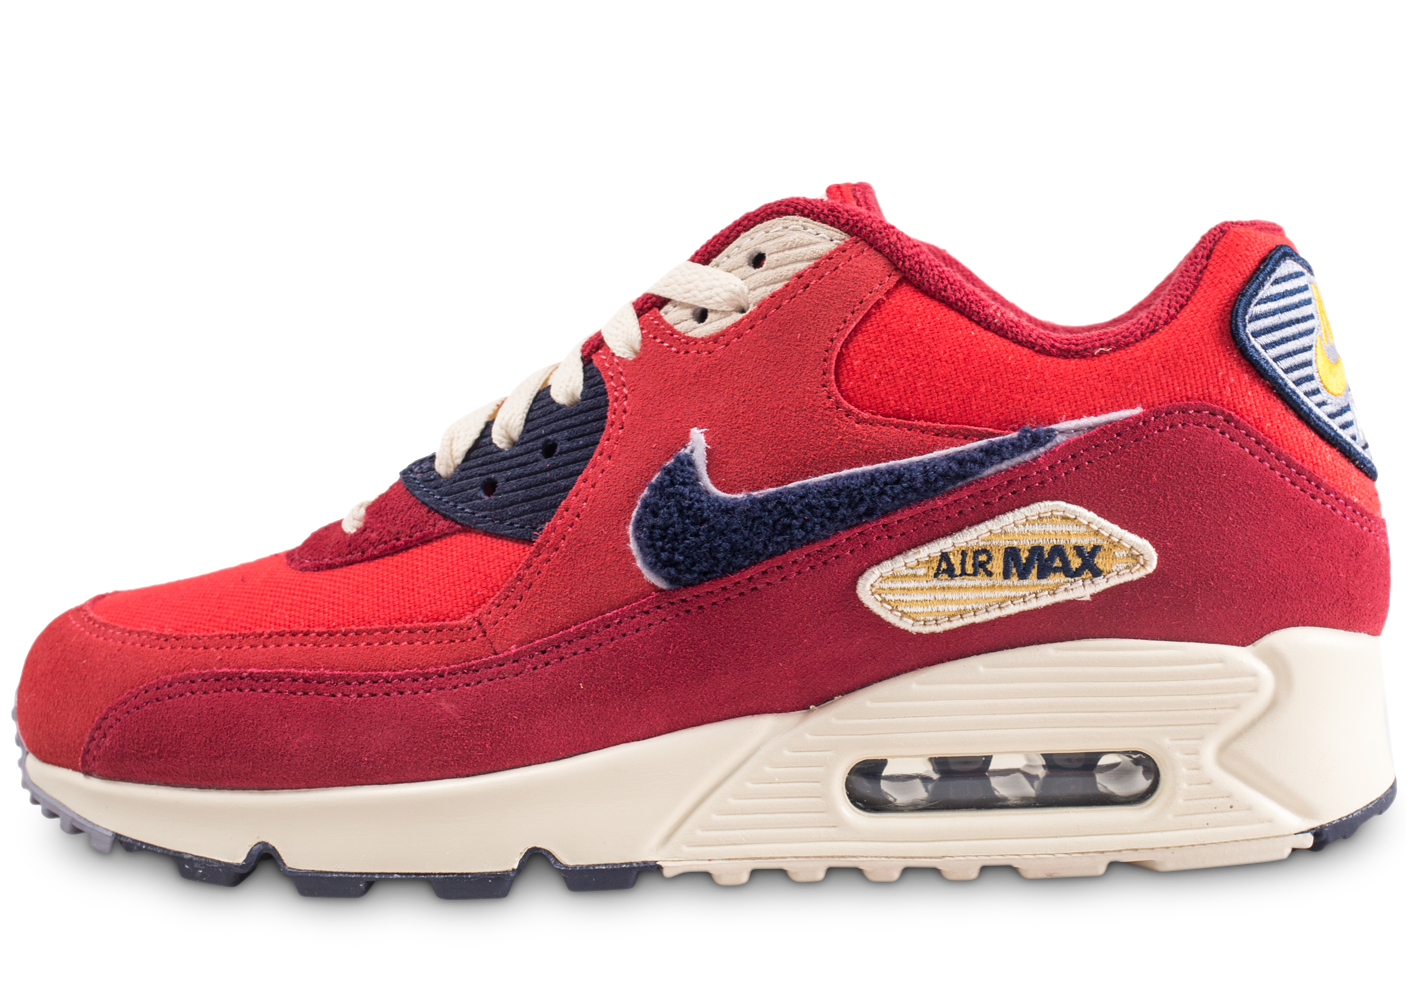 promo code 28230 22a83 Nike homme air max 90 premium se rouge baskets